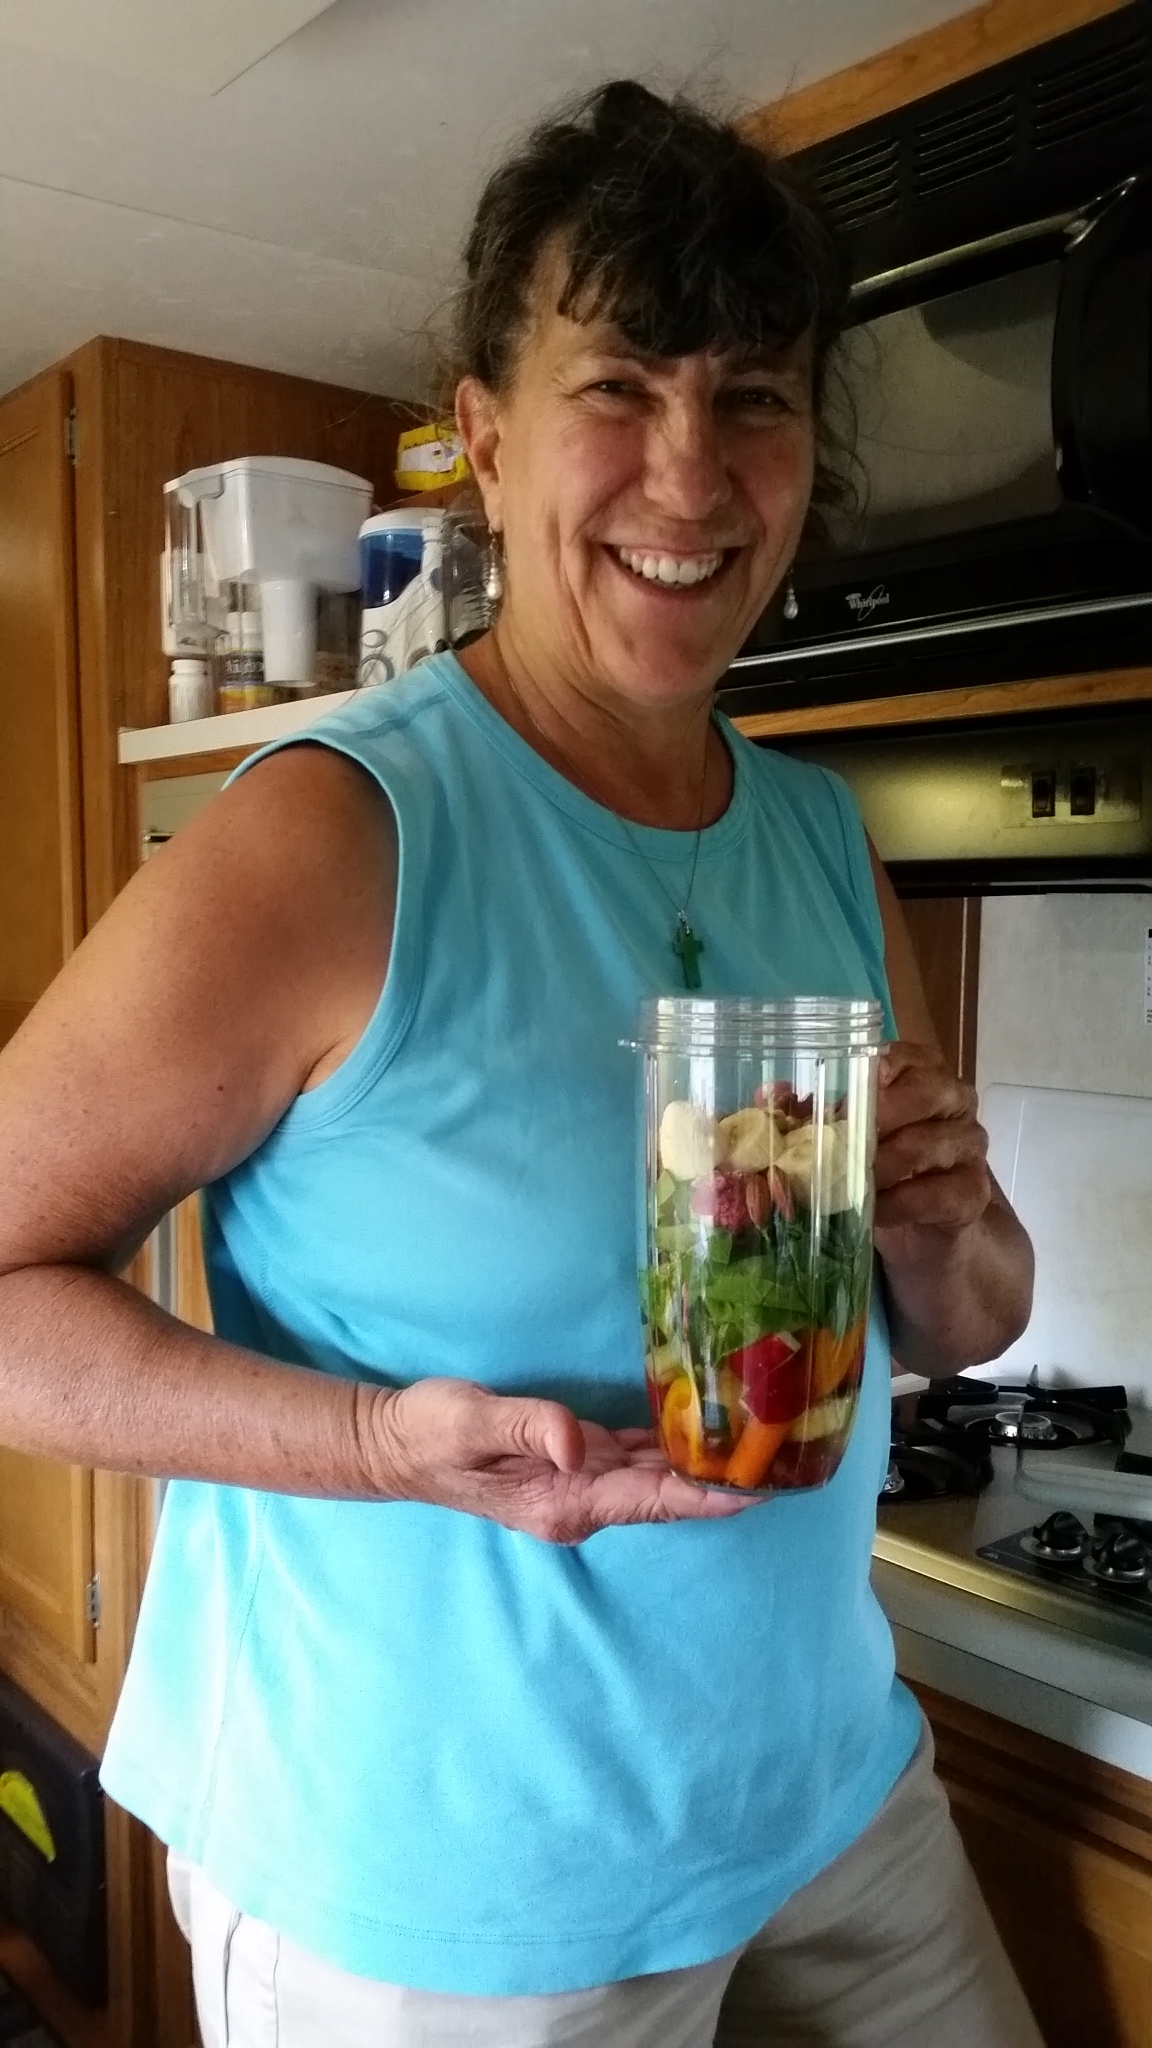 2016-04-29 15.11.21 Sherry making healthy drinks in her new NutriBullet